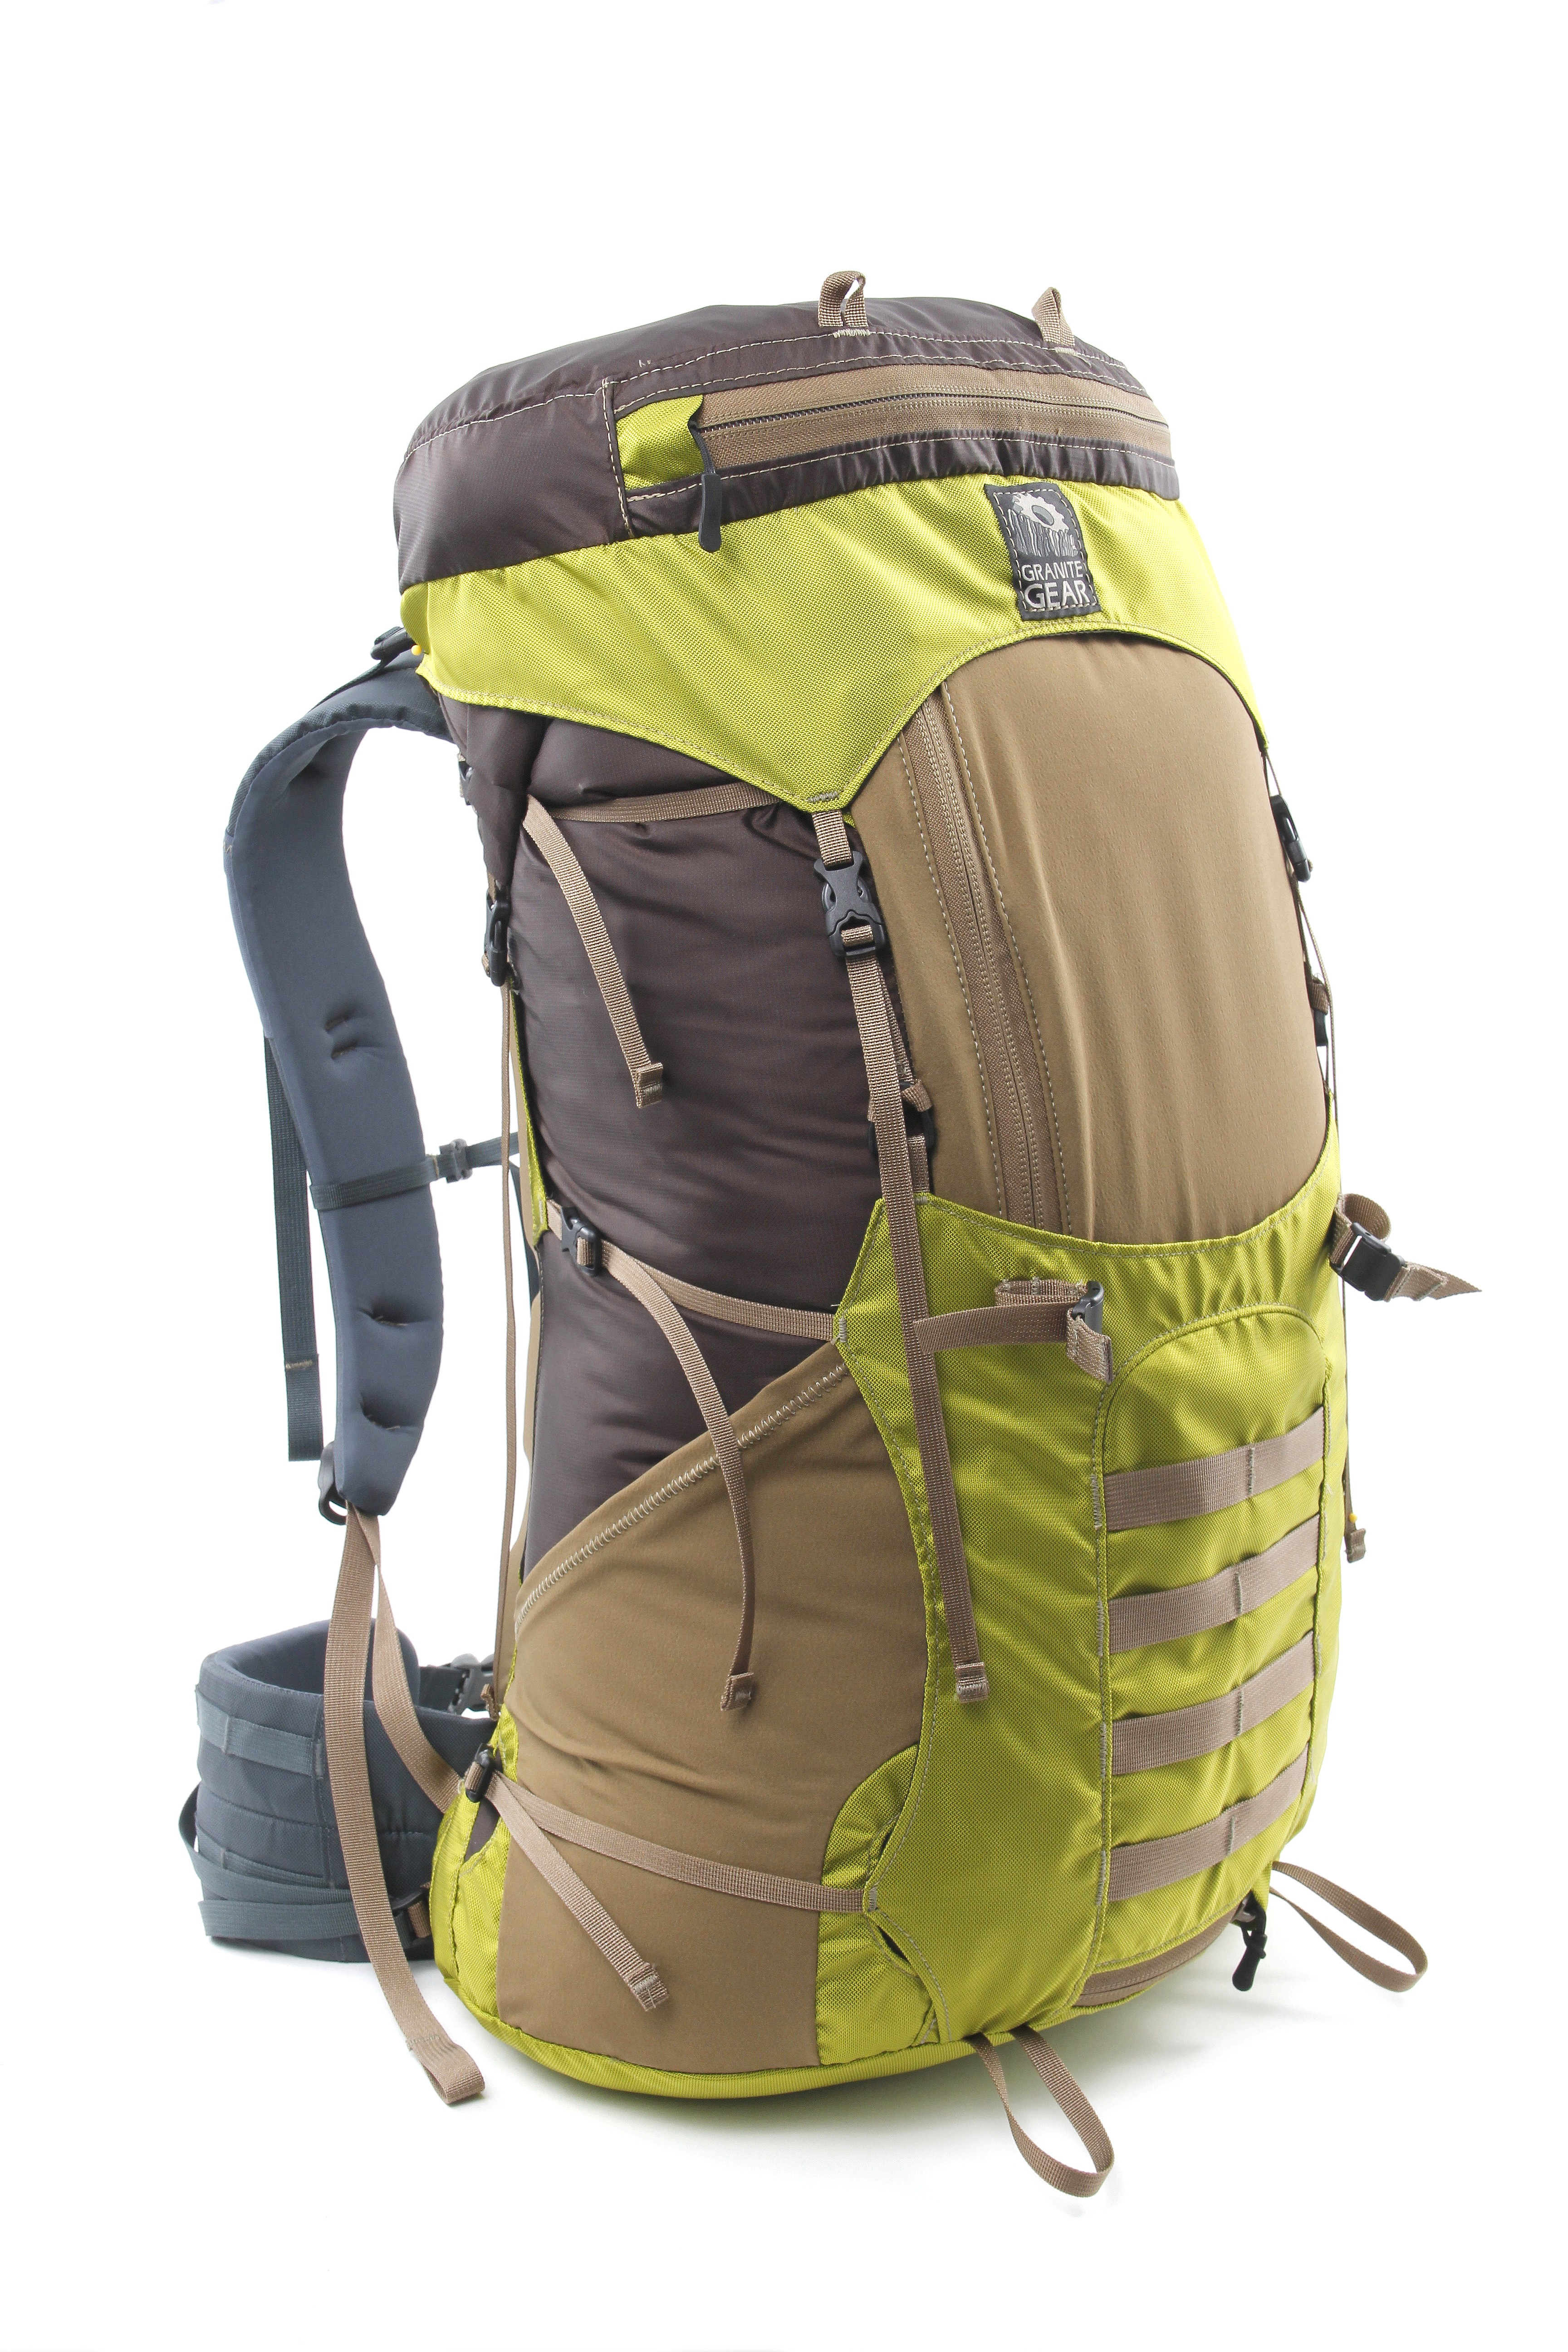 Used Hiking Backpacks oMhFP8k8